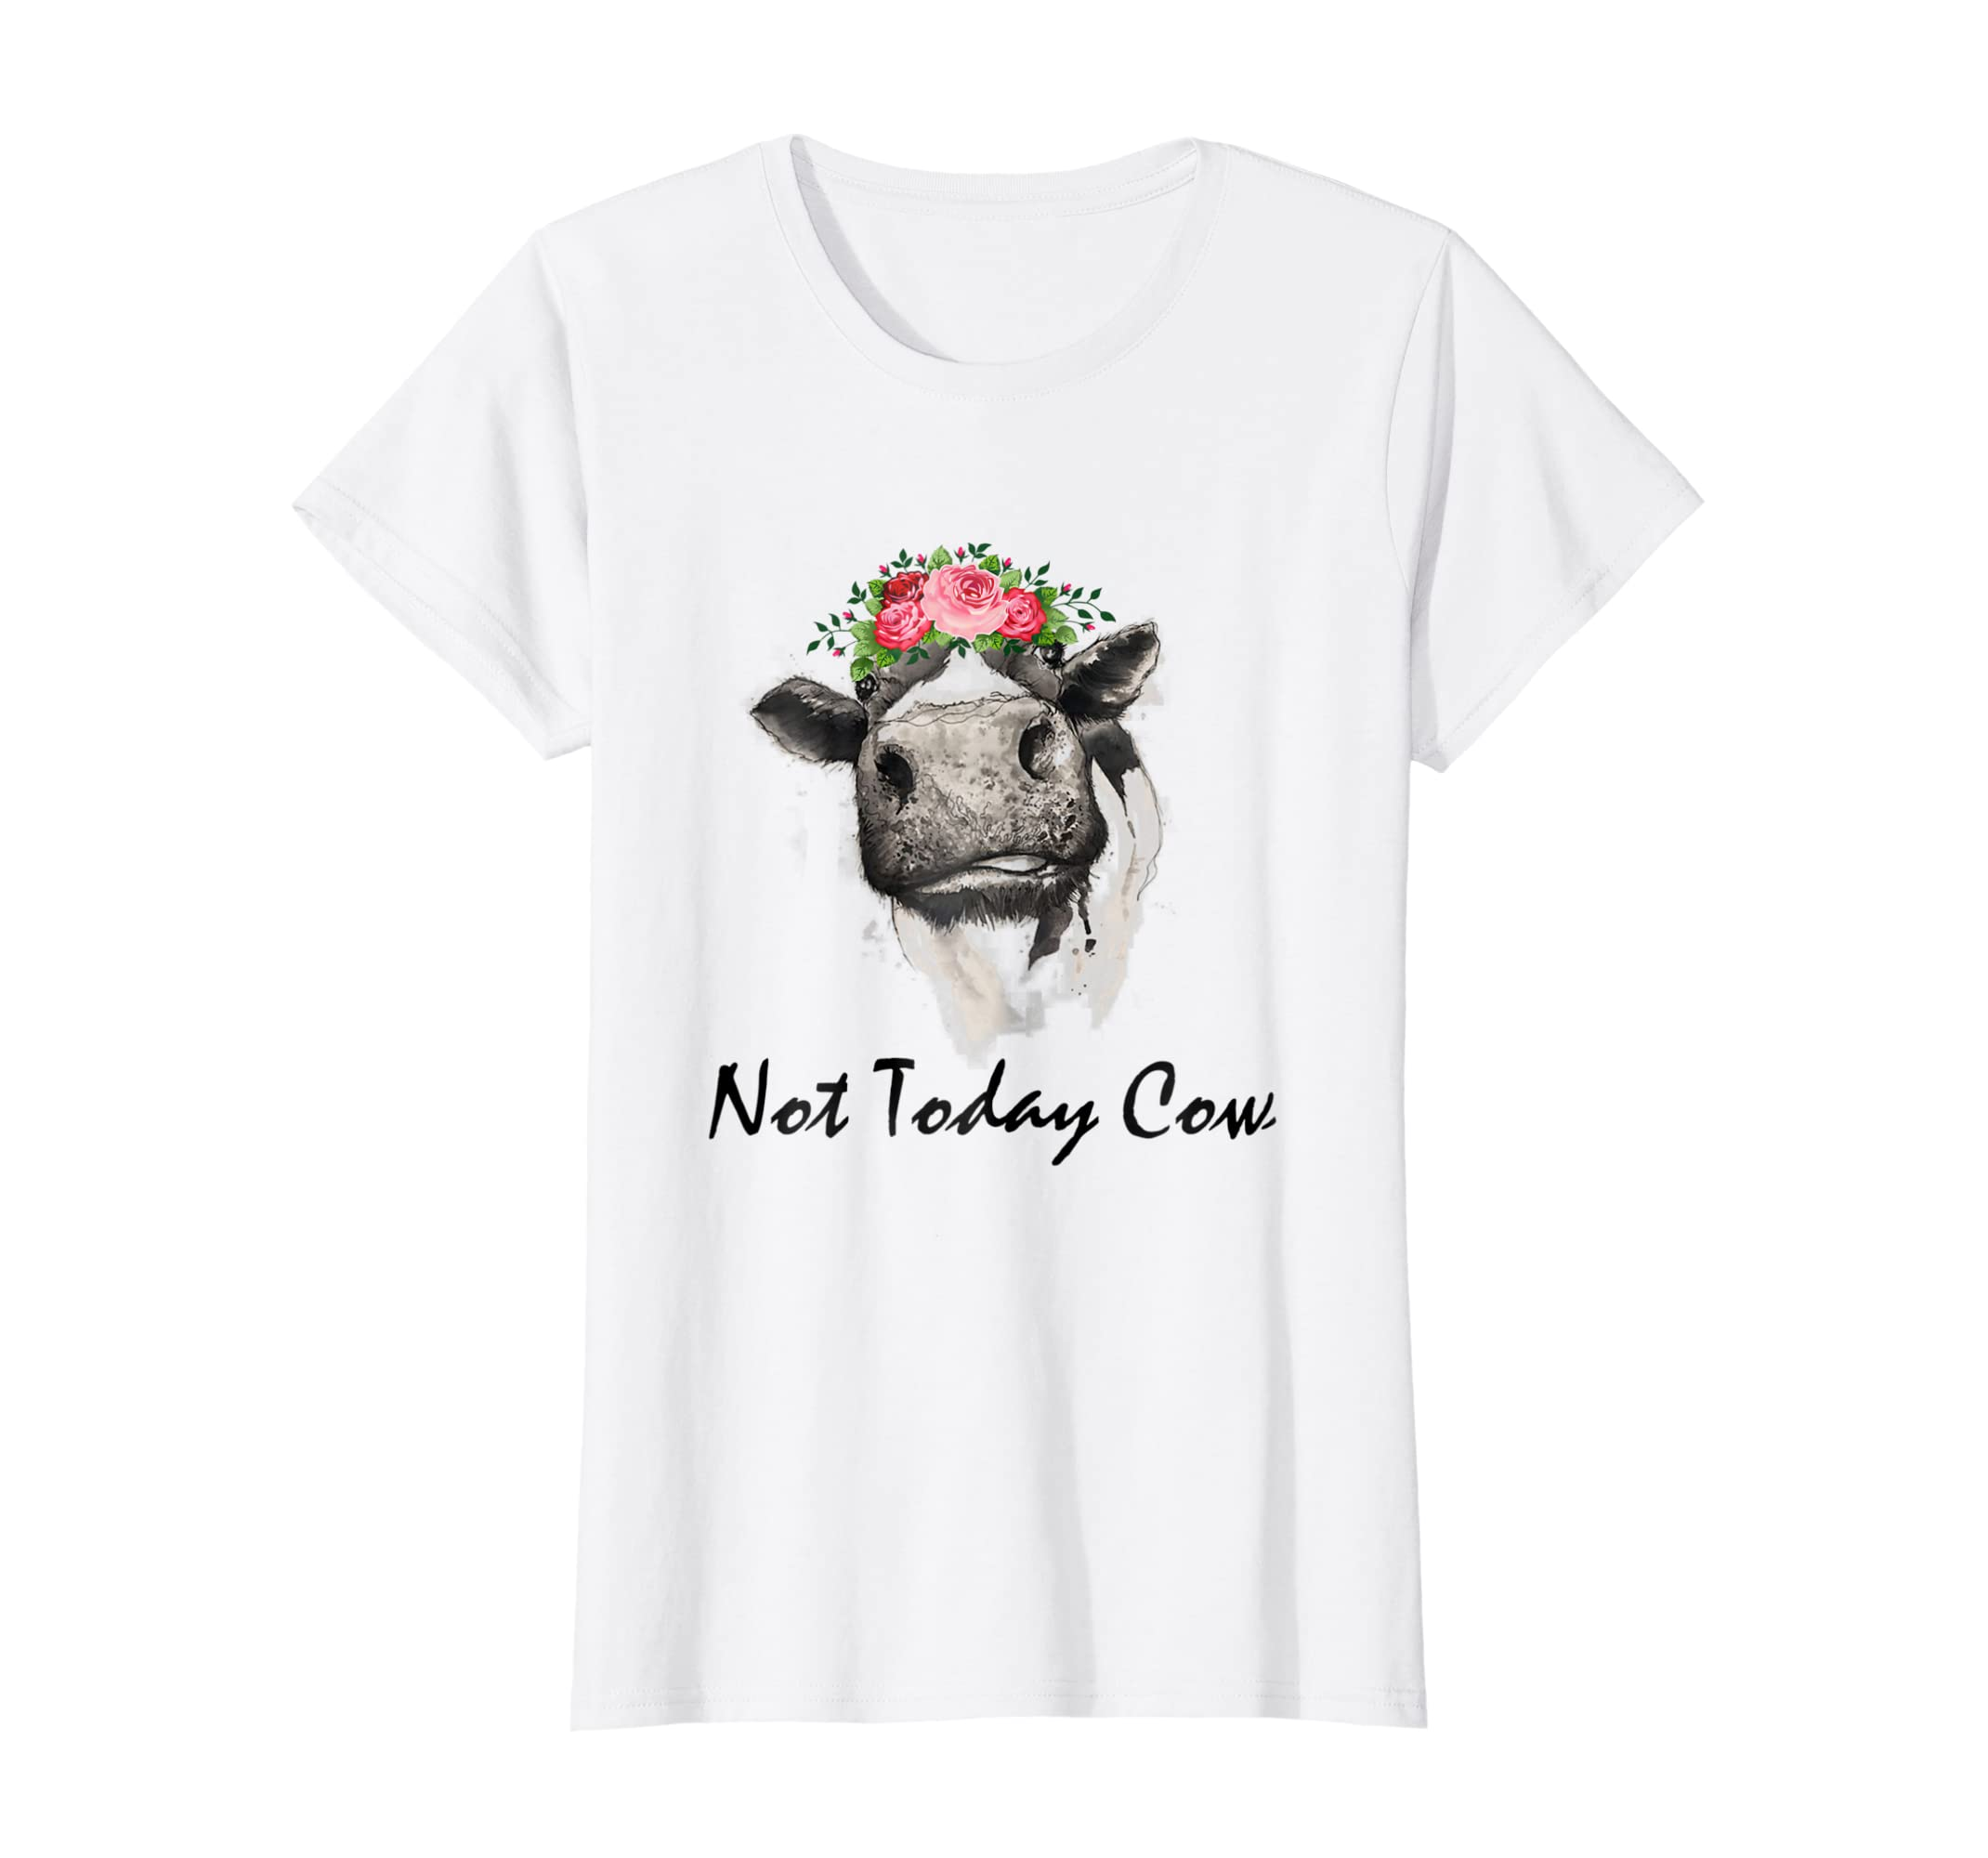 bb018550fc15 Amazon.com: Not Today Cows Flower Style Funny T-Shirt Cute Gift Tees:  Clothing